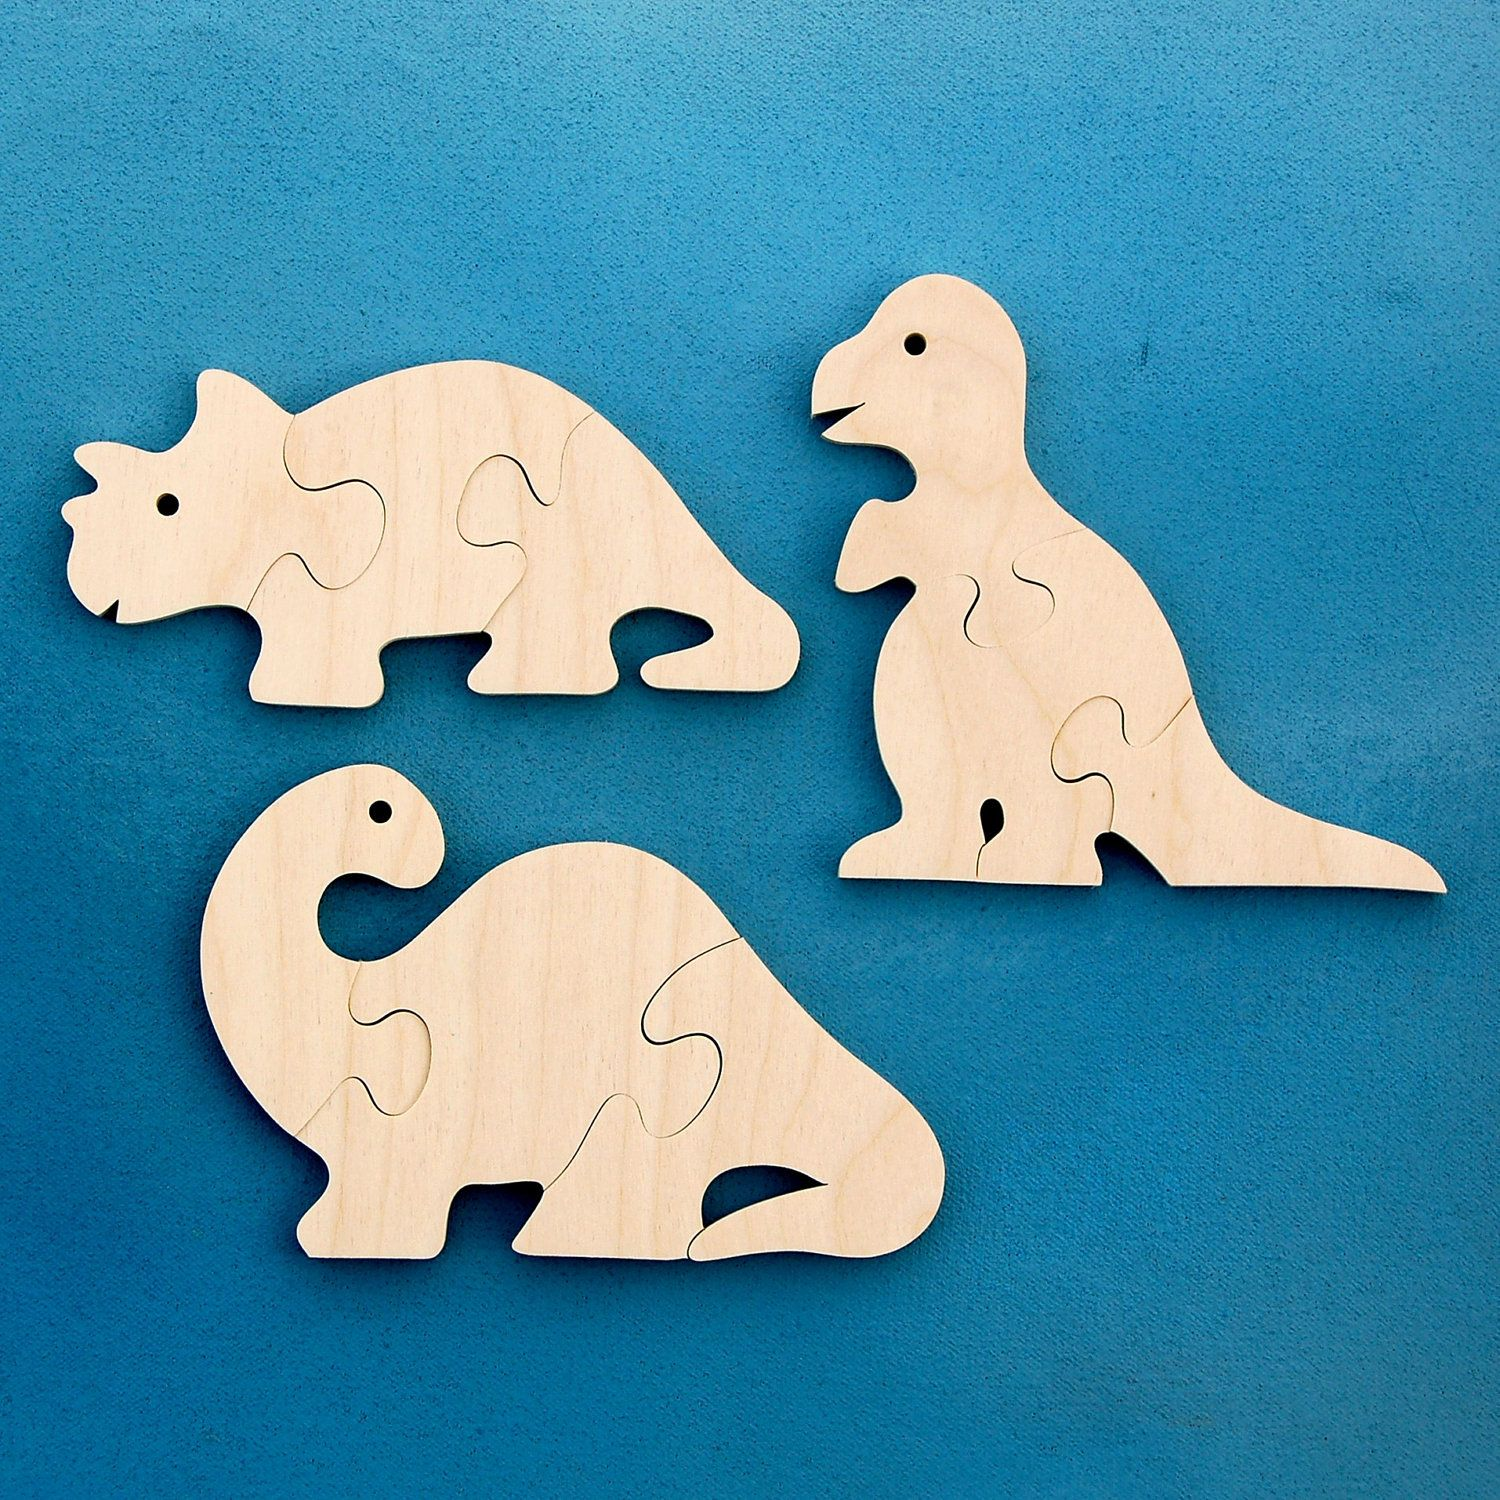 Wood Dinosaur Puzzles Set Of 3 Childrens Wooden Dino Toy